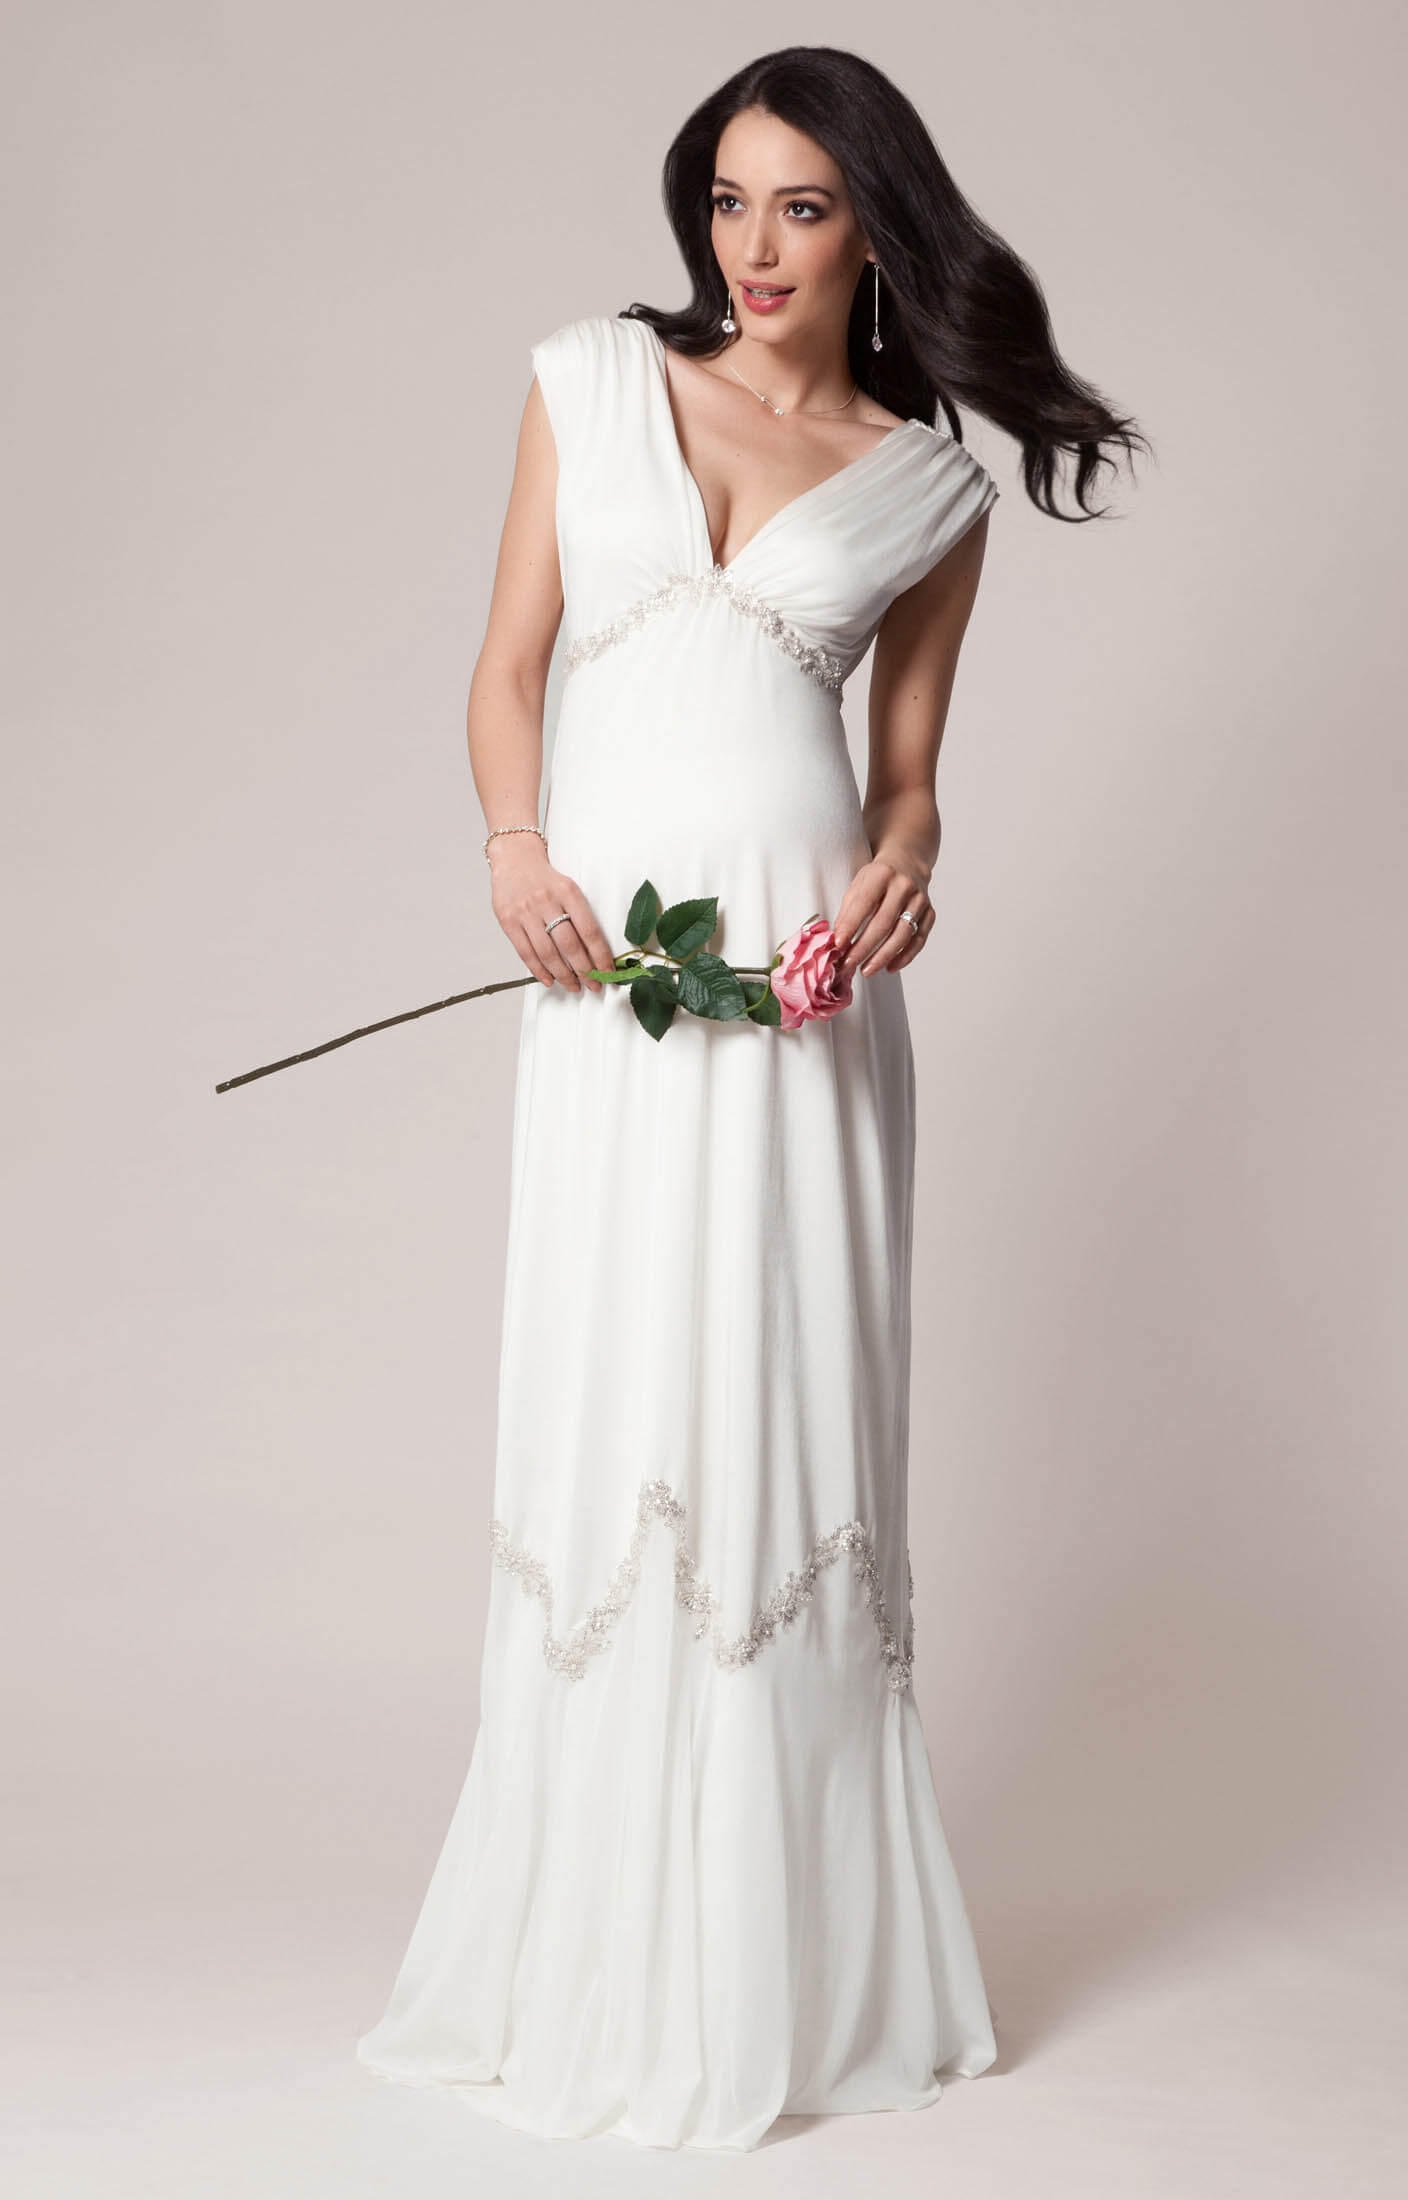 Constellation Maternity Wedding Gown Ivory Maternity Wedding Dresses Evening Wear And Party